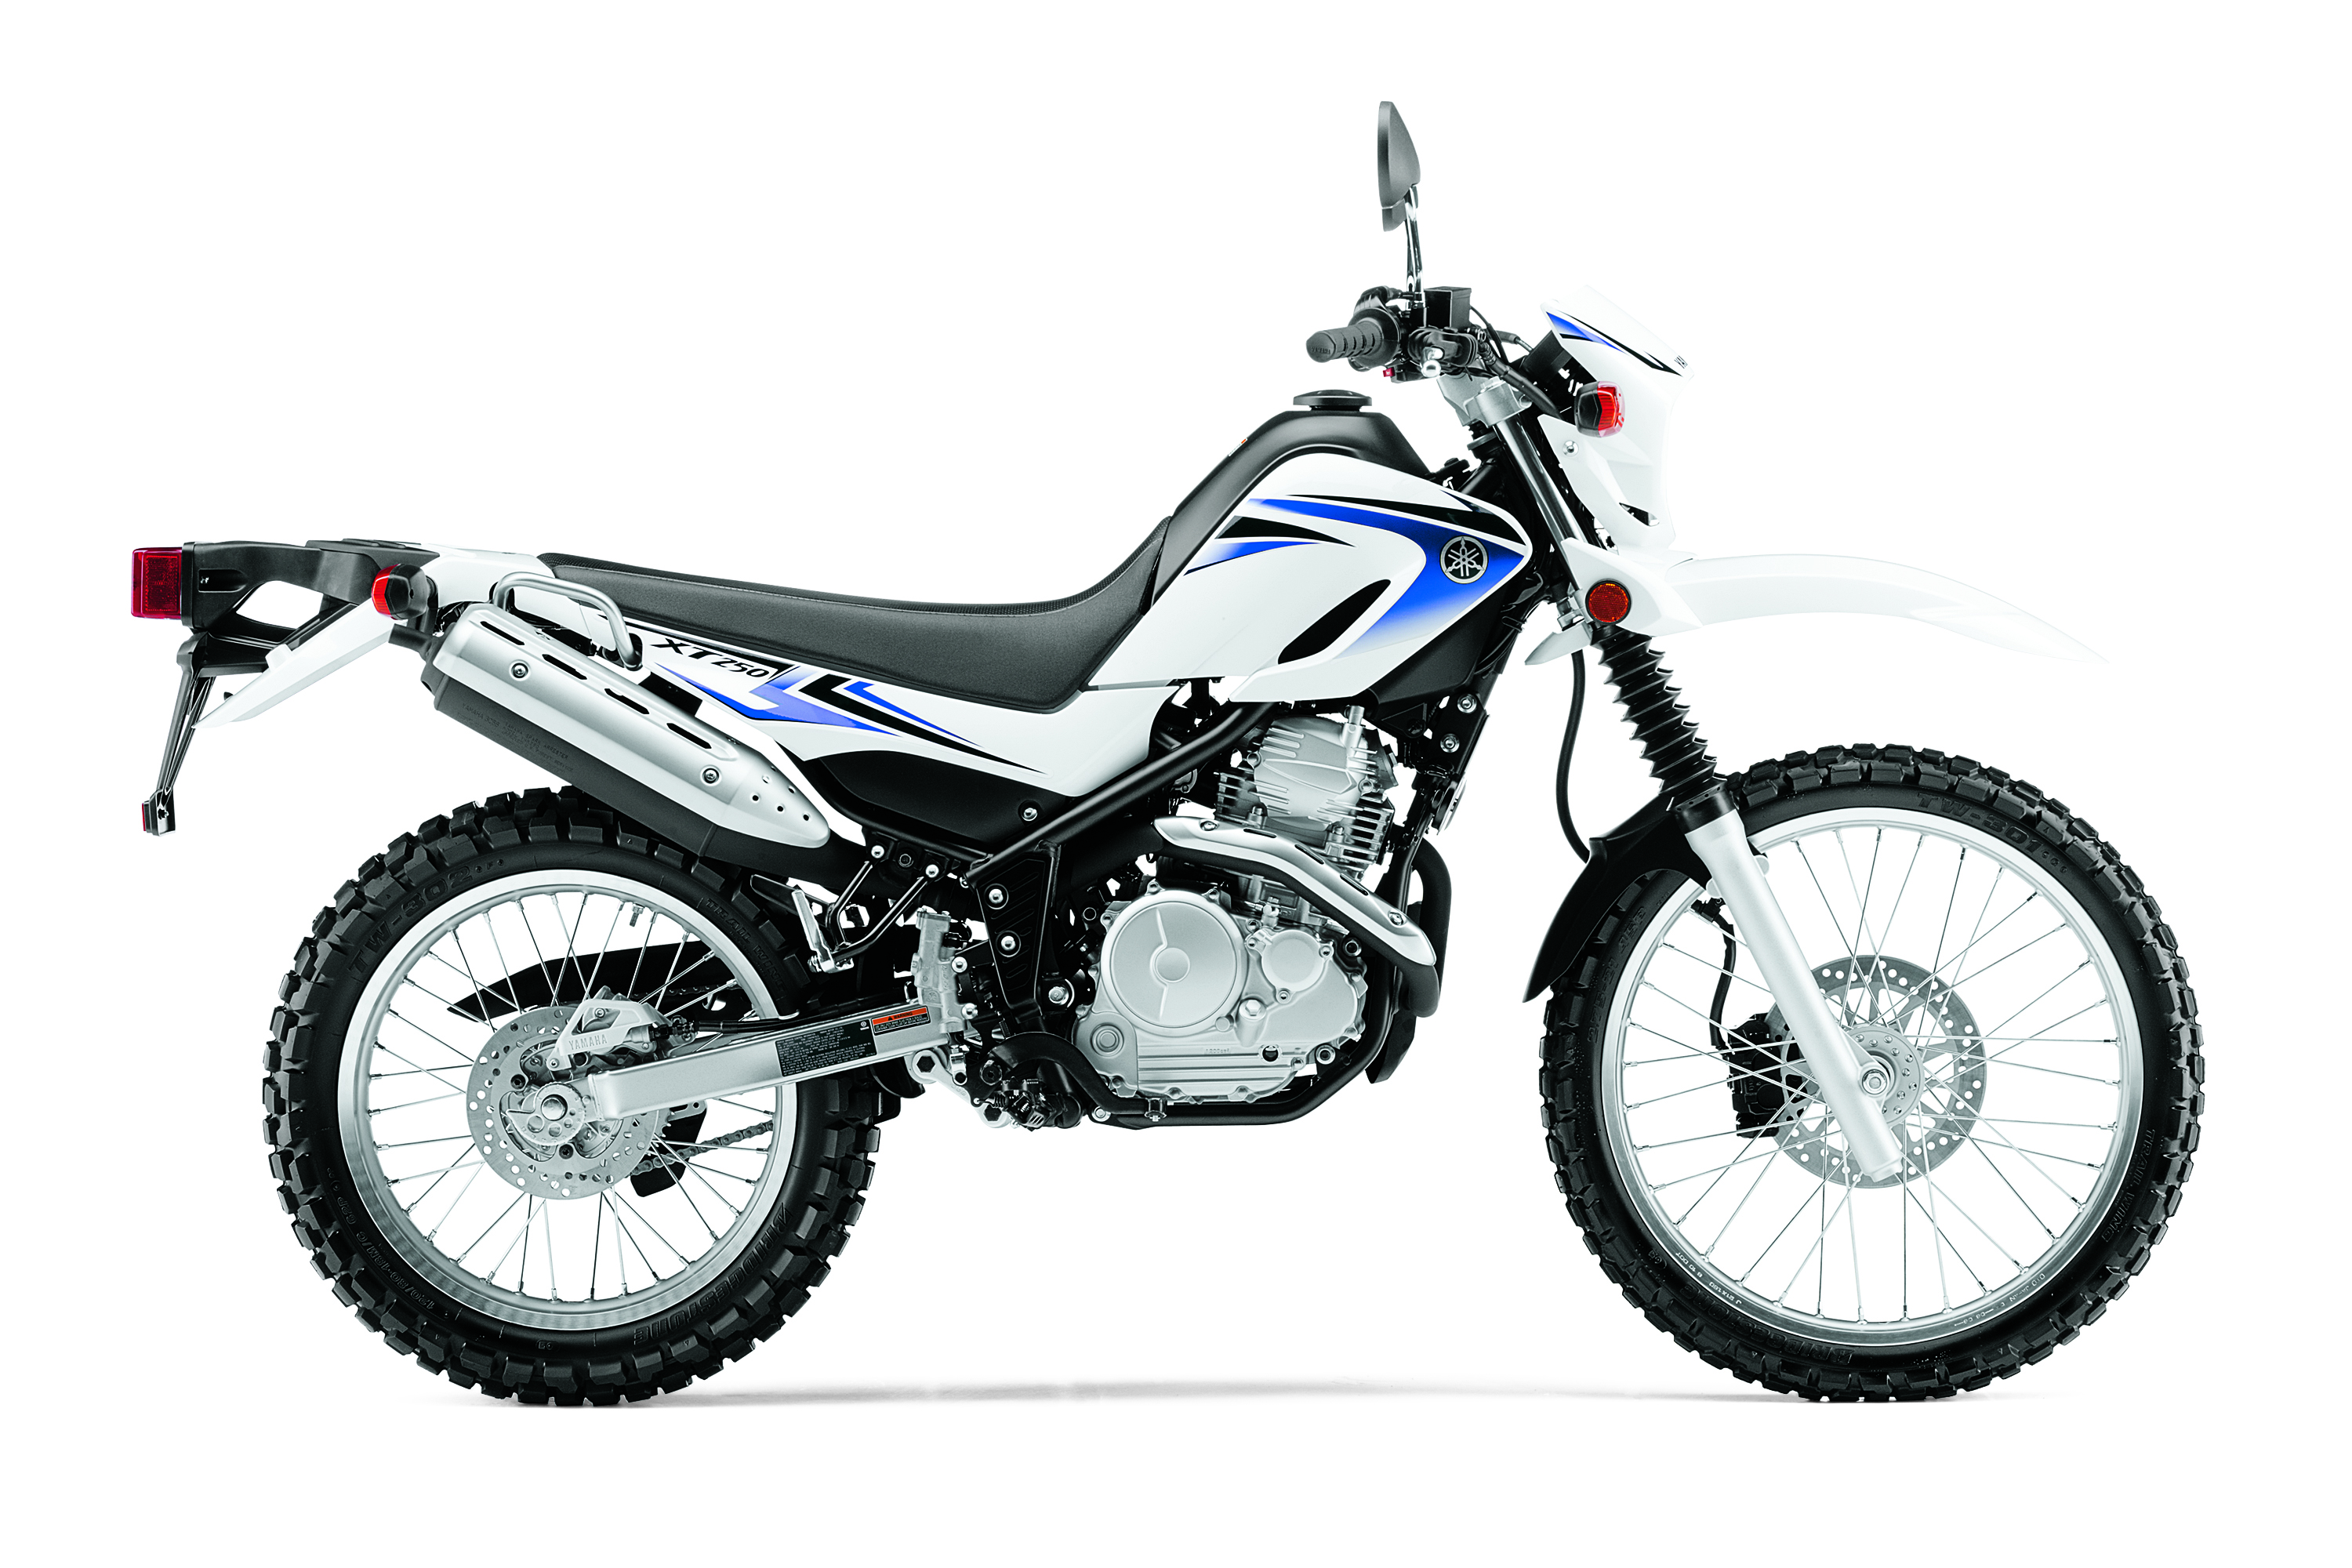 Dual Sport Motorcycle With Lowest Seat Height